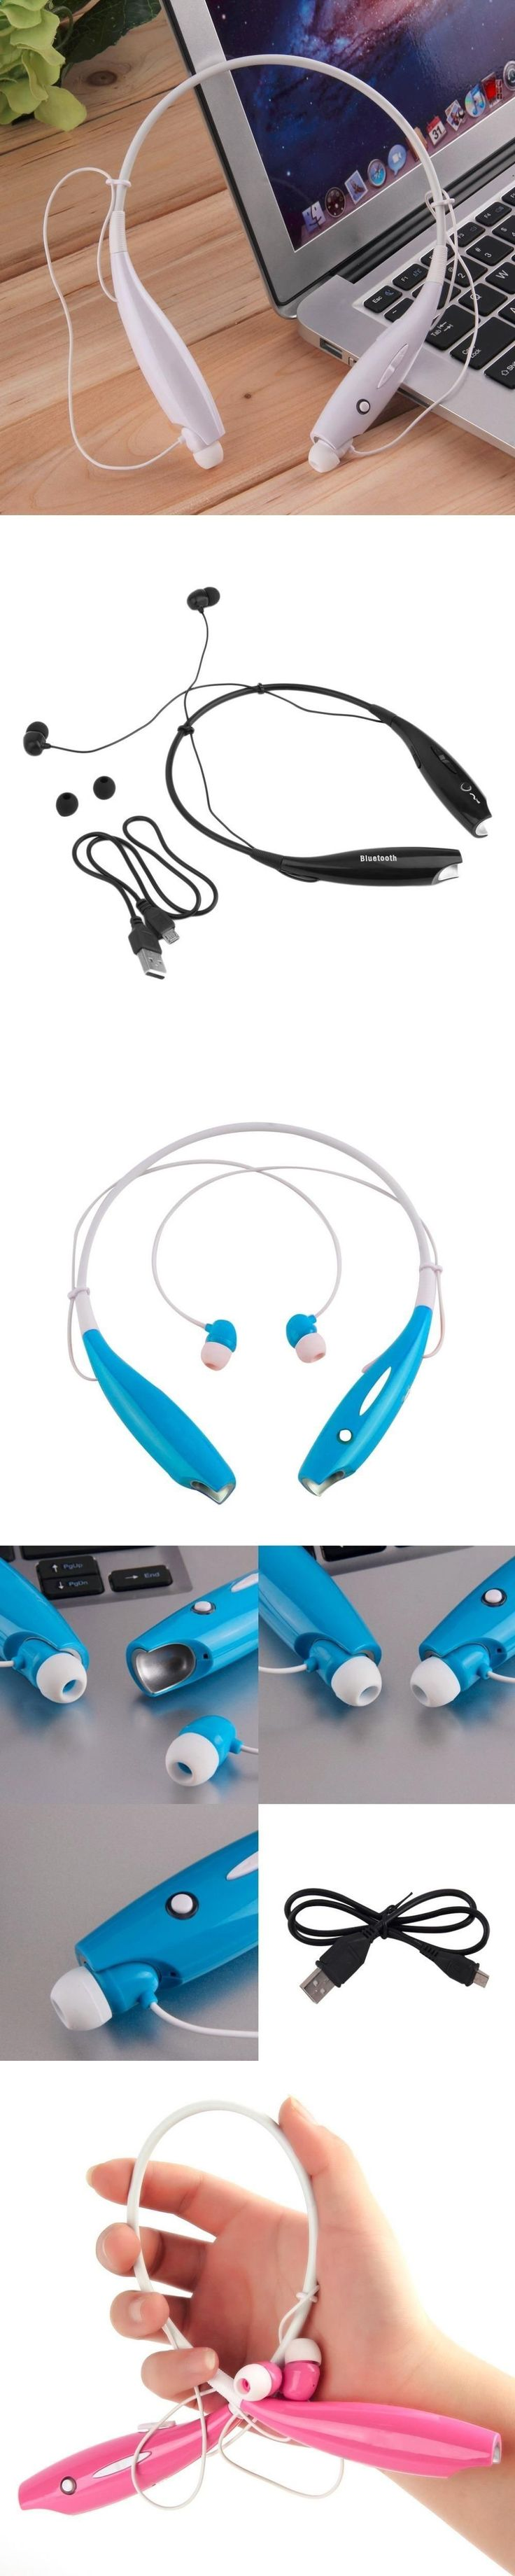 Sports Headphones - Sports Headphones - ONLENY Wireless Neckband Bluetooth Headset HV800 Sports headphone Earphone Stereo Earbuds Earpiece With Microphone For Phone - If you usually go out to run, walk or any other sport in which you usually carry music to accompany or motivate you, we have selected 13 models of sports headphones that we consider among the best in the market for different aspects, from comfort to use to design, sound quality or value for money, so that you find variety...